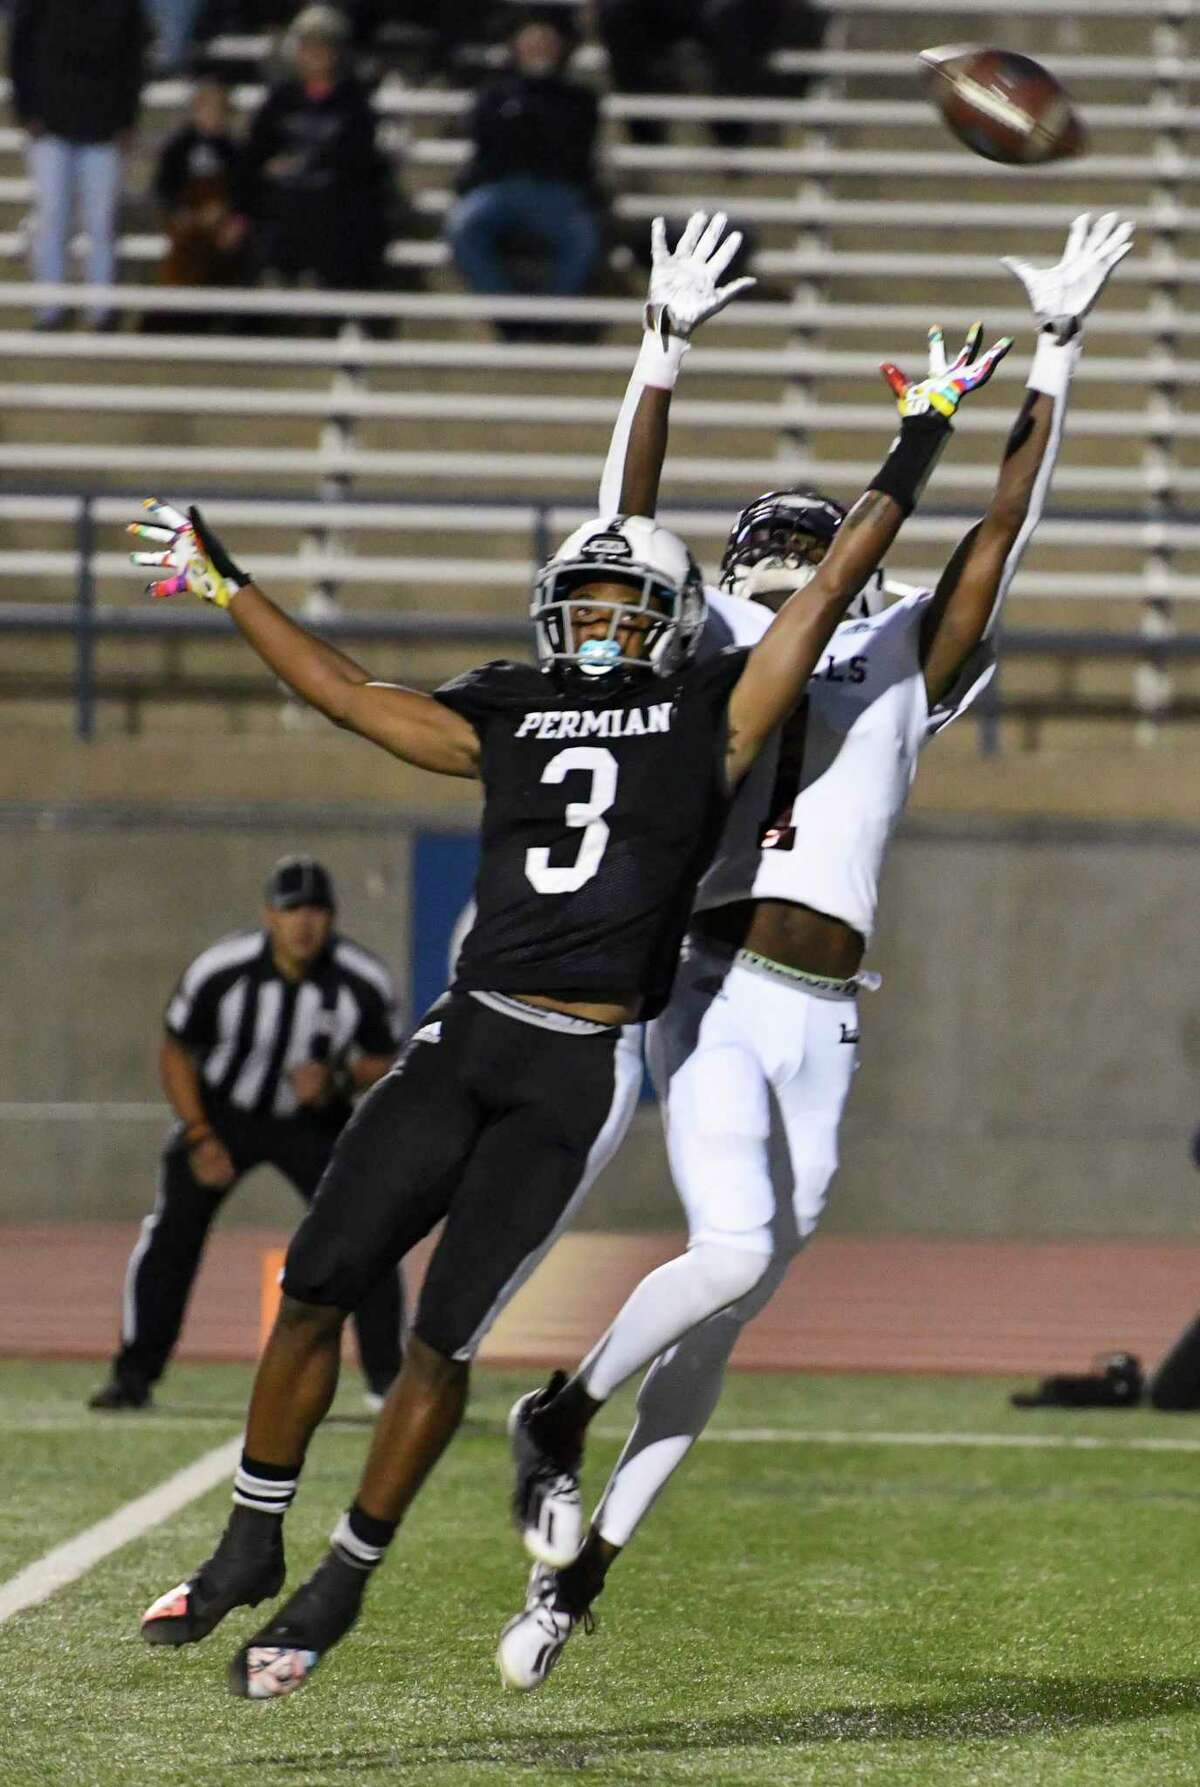 Lee's Tre Hubert (1) attempts to intercept as Permian's D'Shybreon Stephens-Deary (3) tries to catch the pass Friday, Oct. 16, 2020 at Ratliff Stadium. Jacy Lewis/Reporter-Telegram